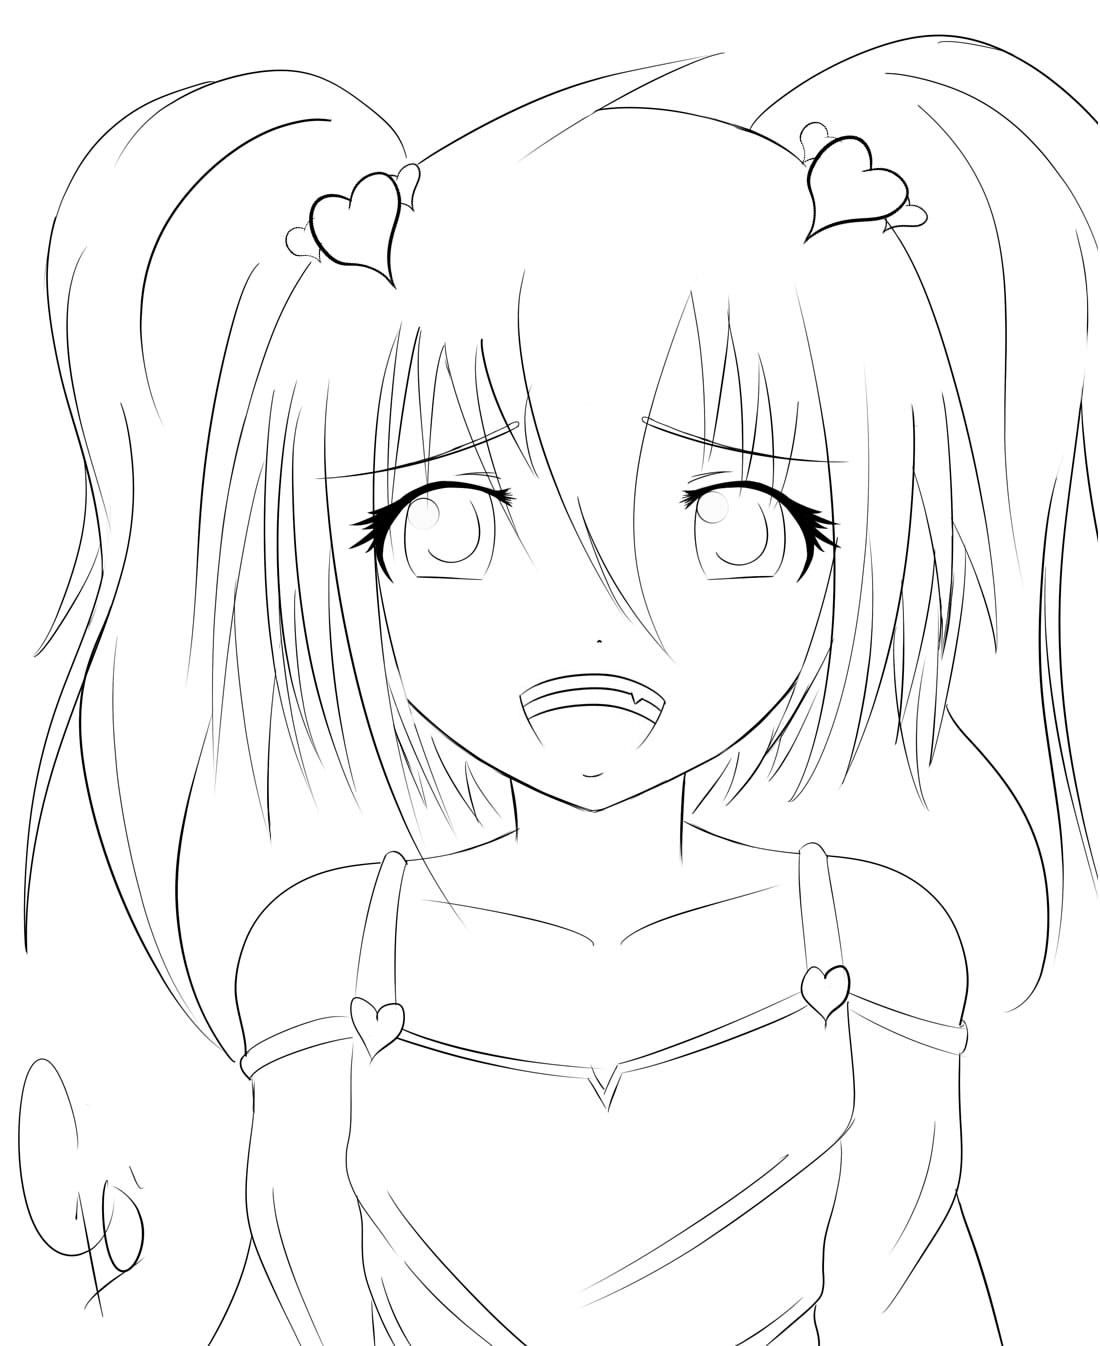 anime little girl coloring pages anime school girl coloring pages printable coloring little girl anime pages